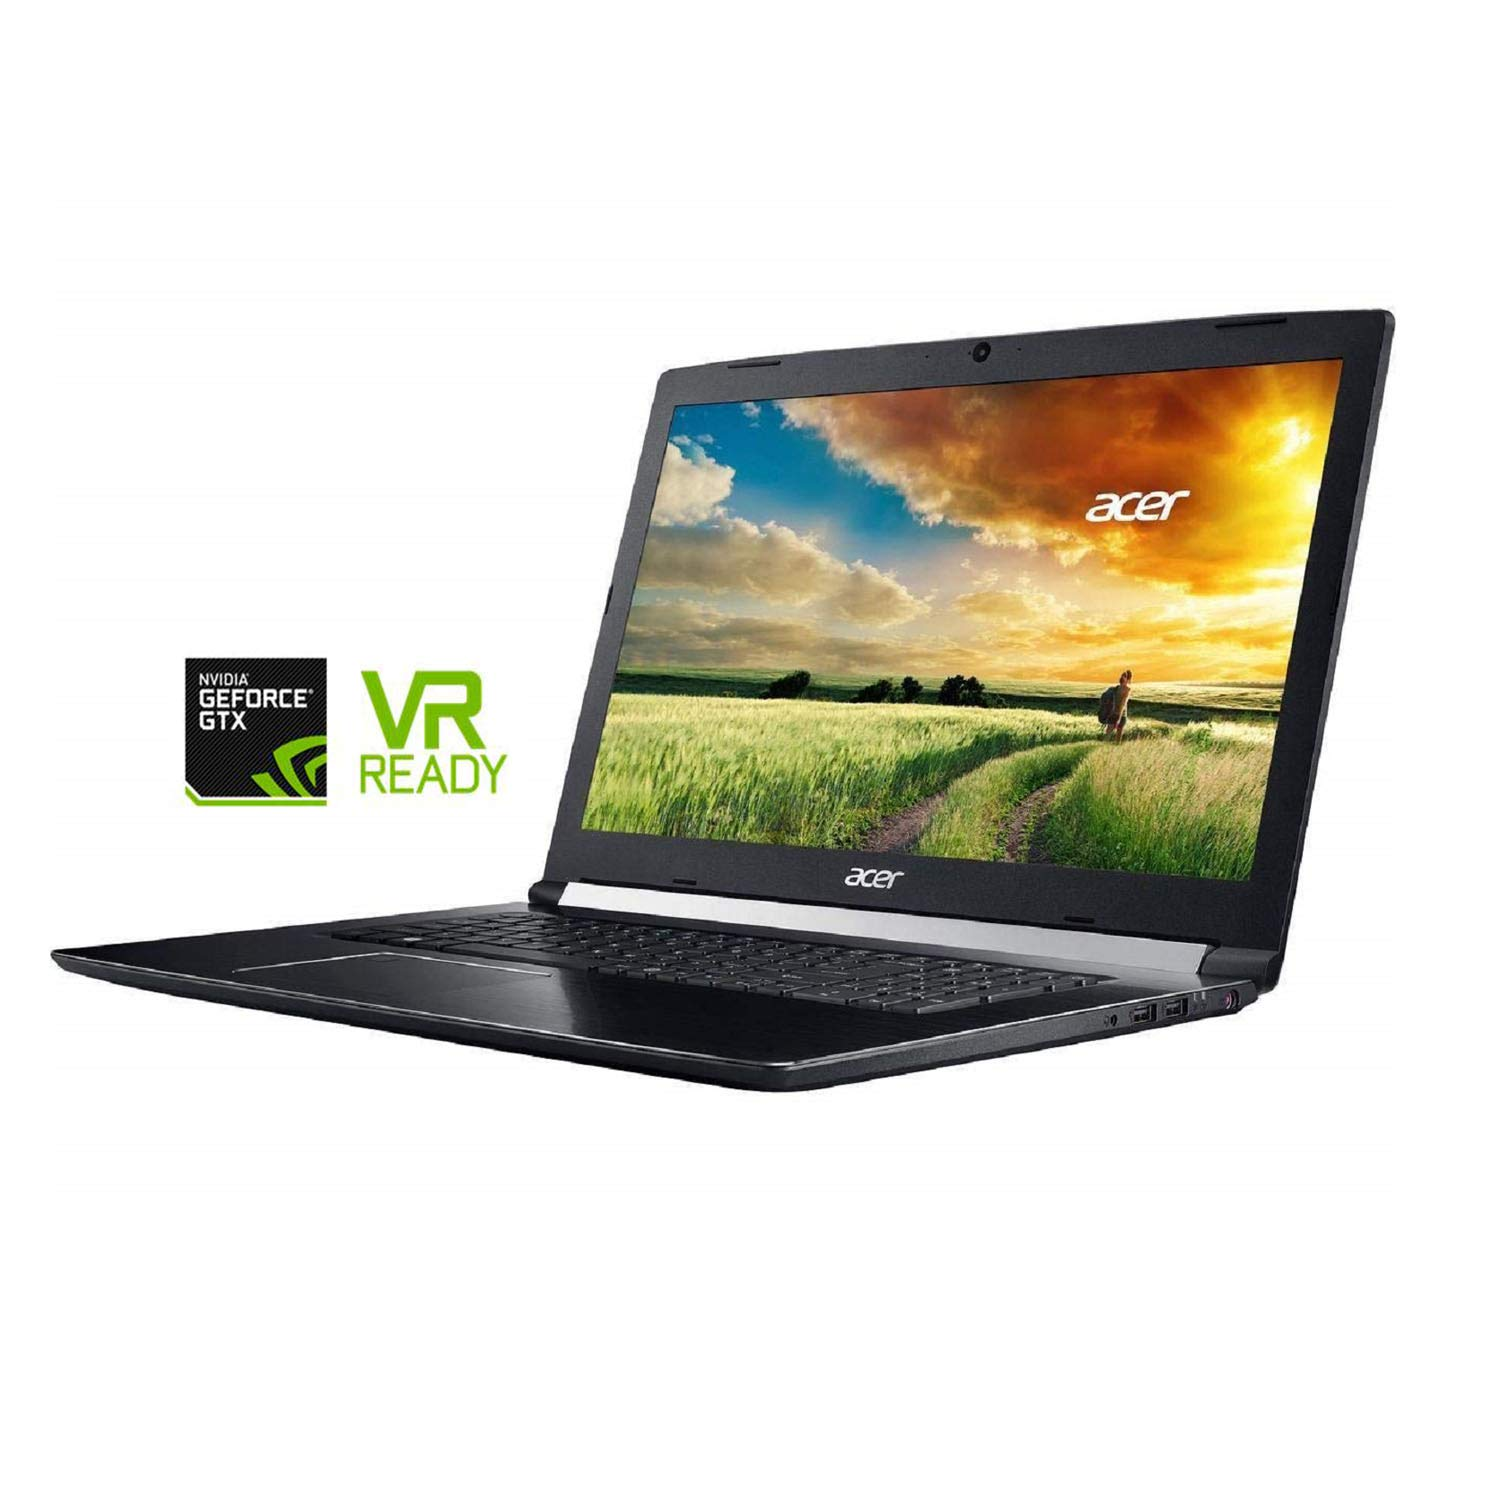 "Acer Aspire7プレミアム17.3"" ゲームと商務ノートPC(intel第8世代コーヒー湖i7-8750H 6コア、32GBRAM、2TBSATA SSD、17.3"" FHD(1920×1080)、GeForce GTX 1060 、Windows 10ホーム)VR Ready B07GZ49ZFF  2TB SSD 2TB SSD